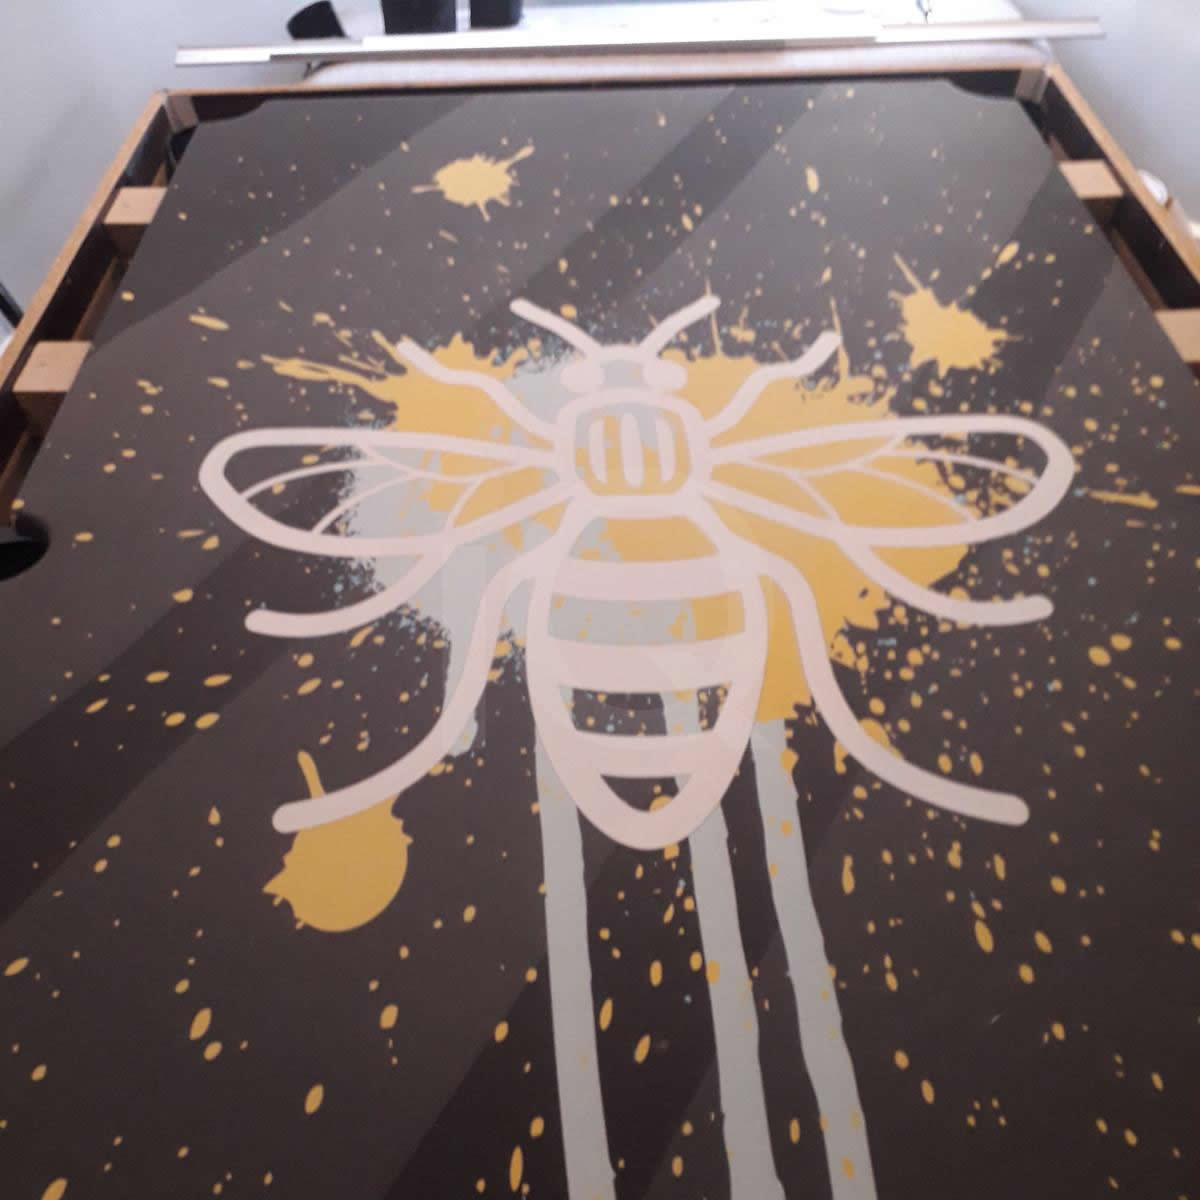 Installation of a Bee Custom Design Pool Table Cloth Before Image 5